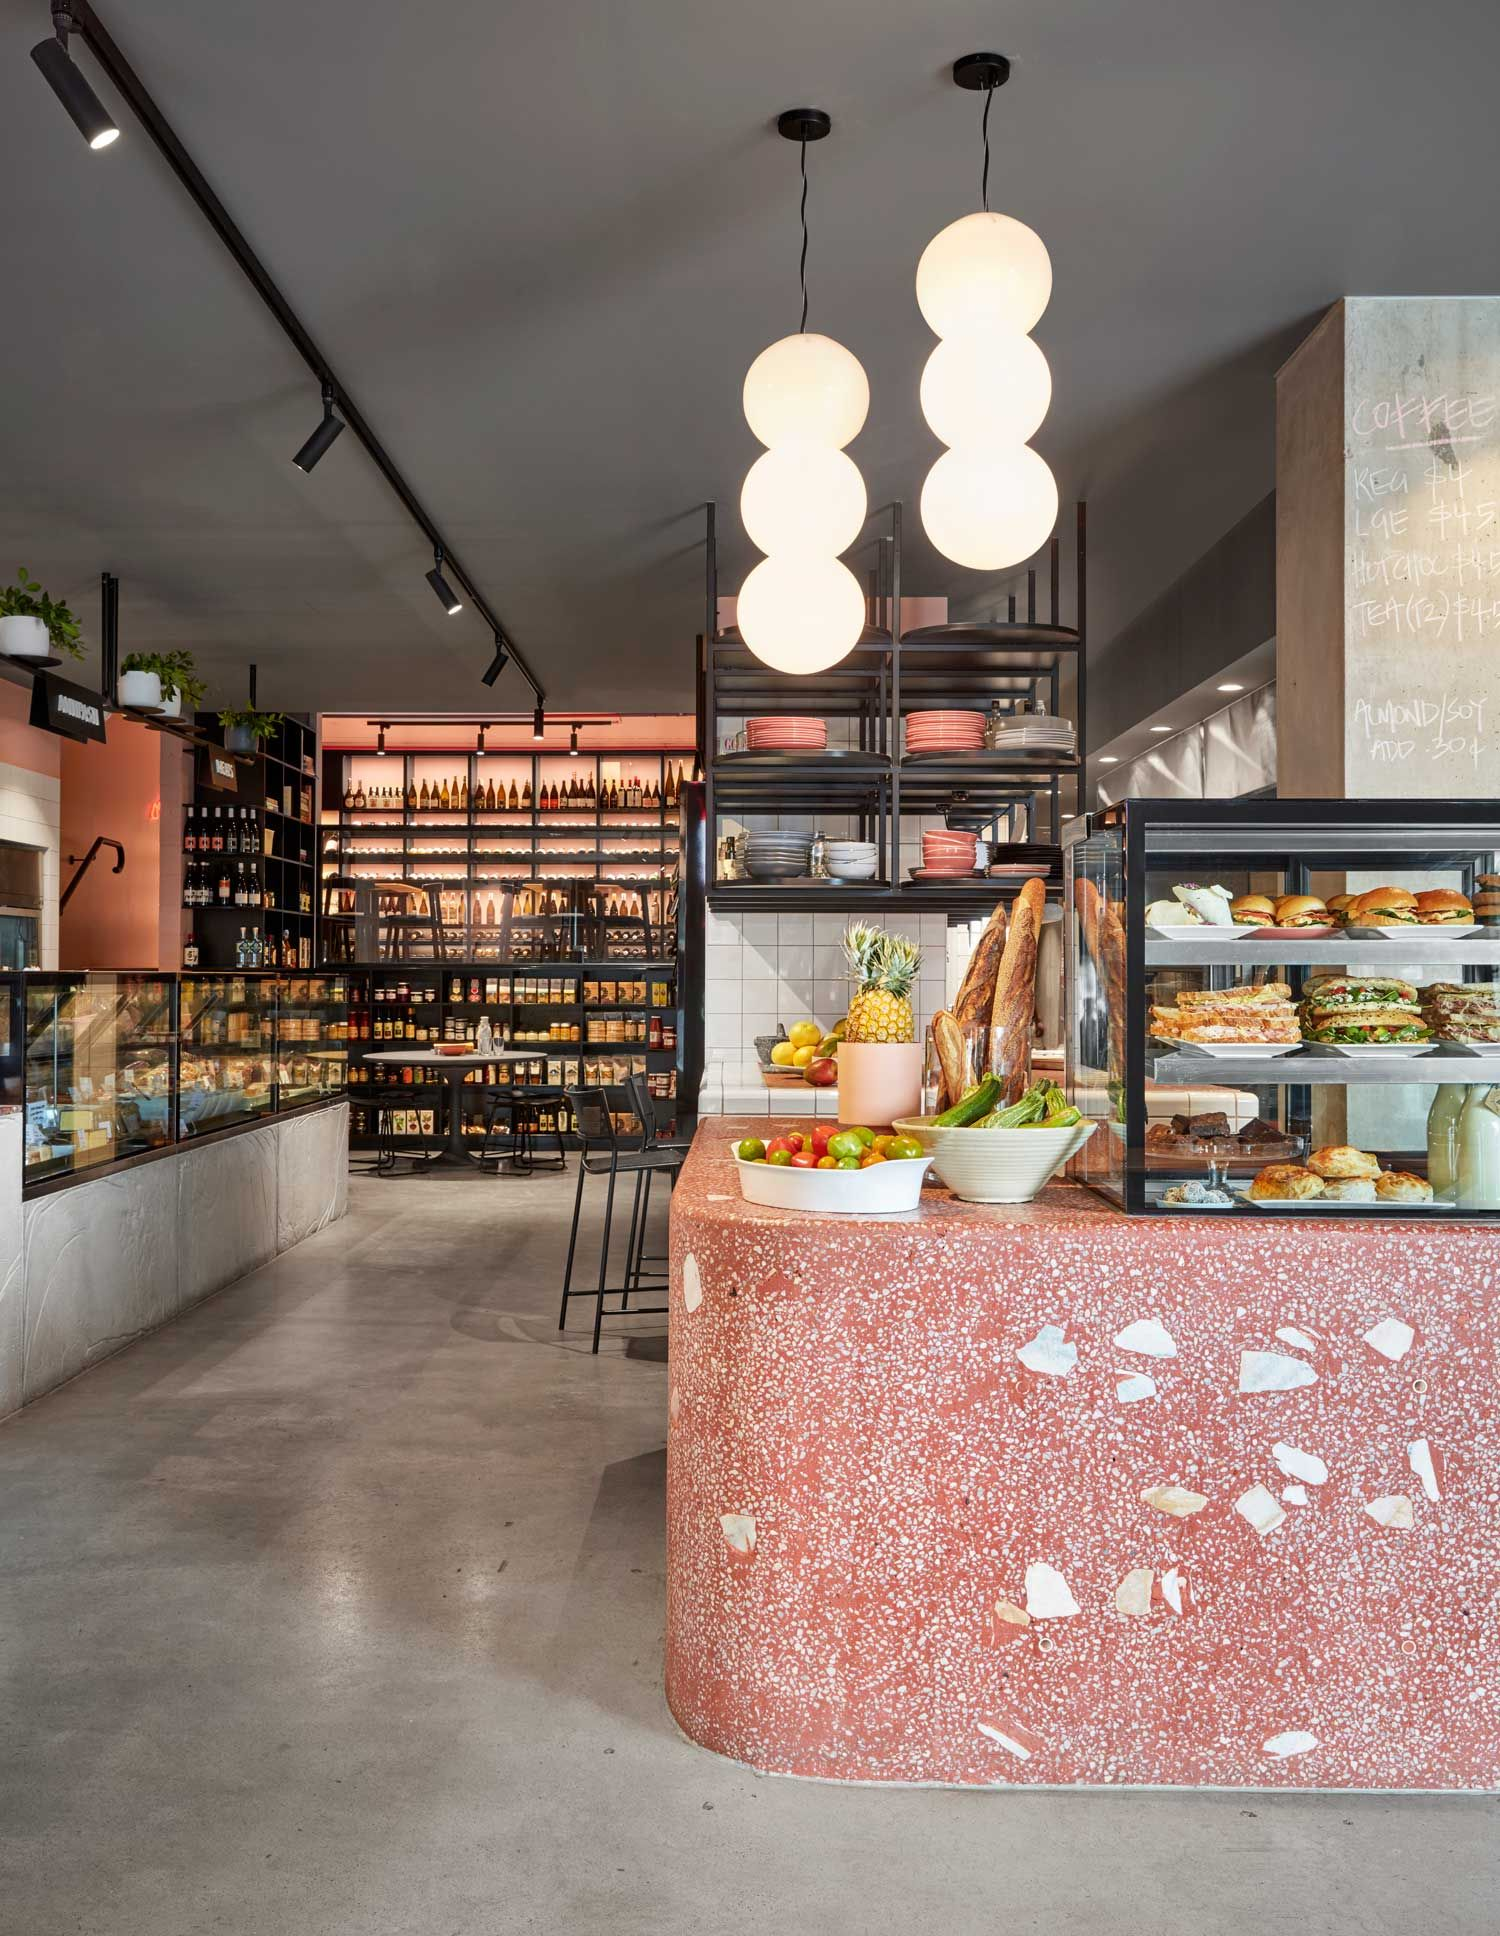 Restaurant Keuken & Deli Hunter Co Deli In Elsternwick Melbourne By Mim Design Food